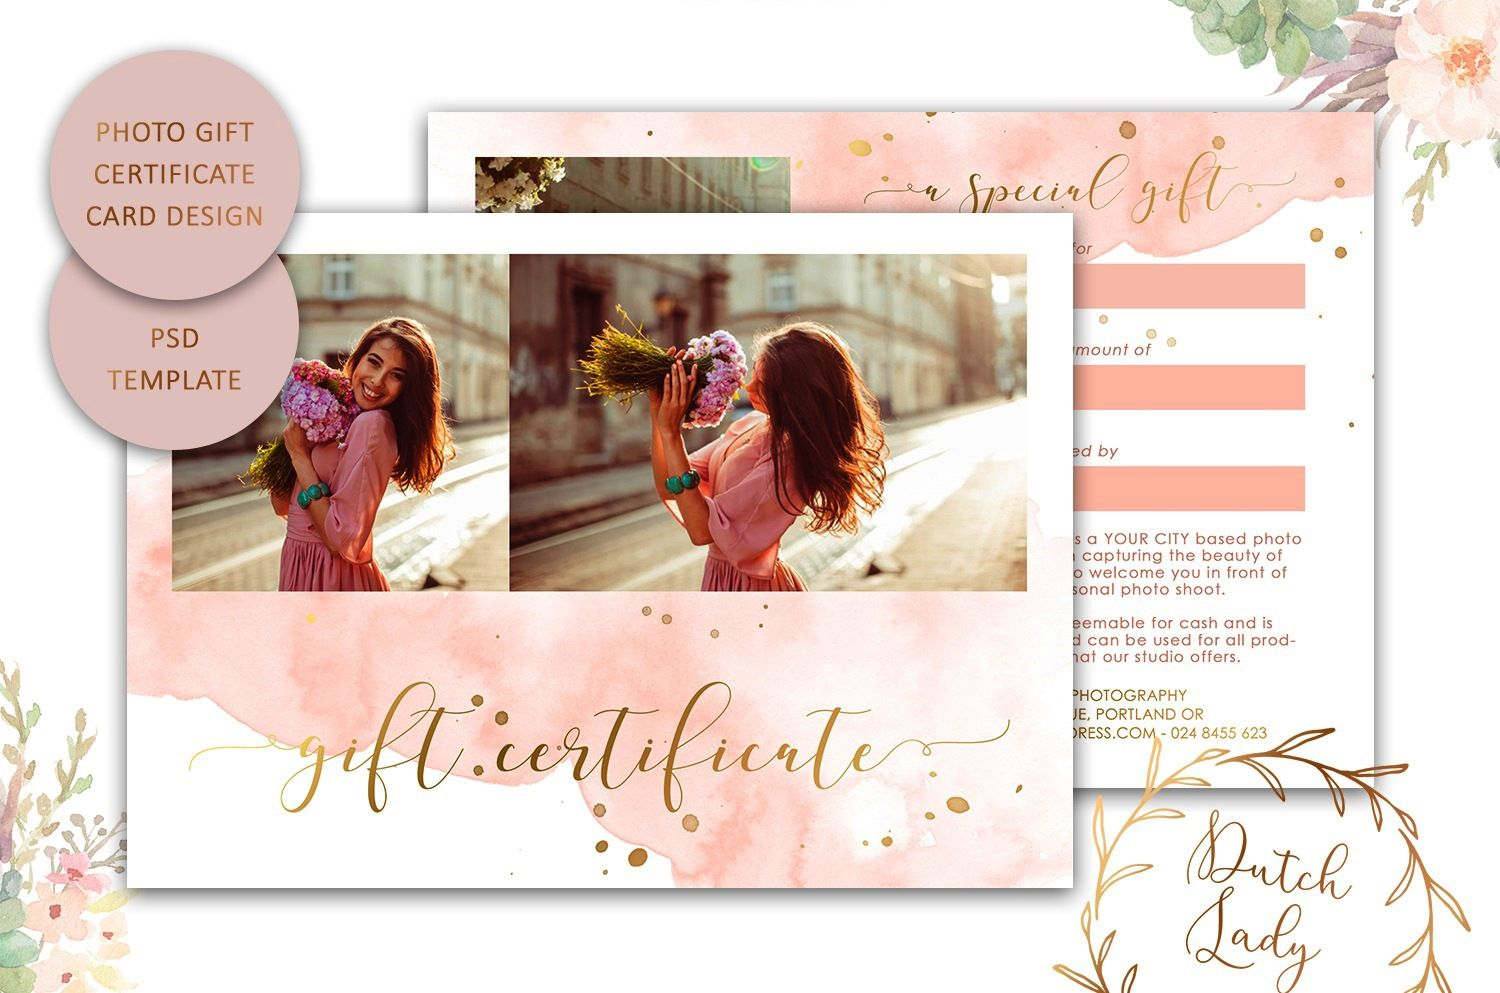 008 Stupendou Photography Gift Certificate Template Photoshop Free Idea Full